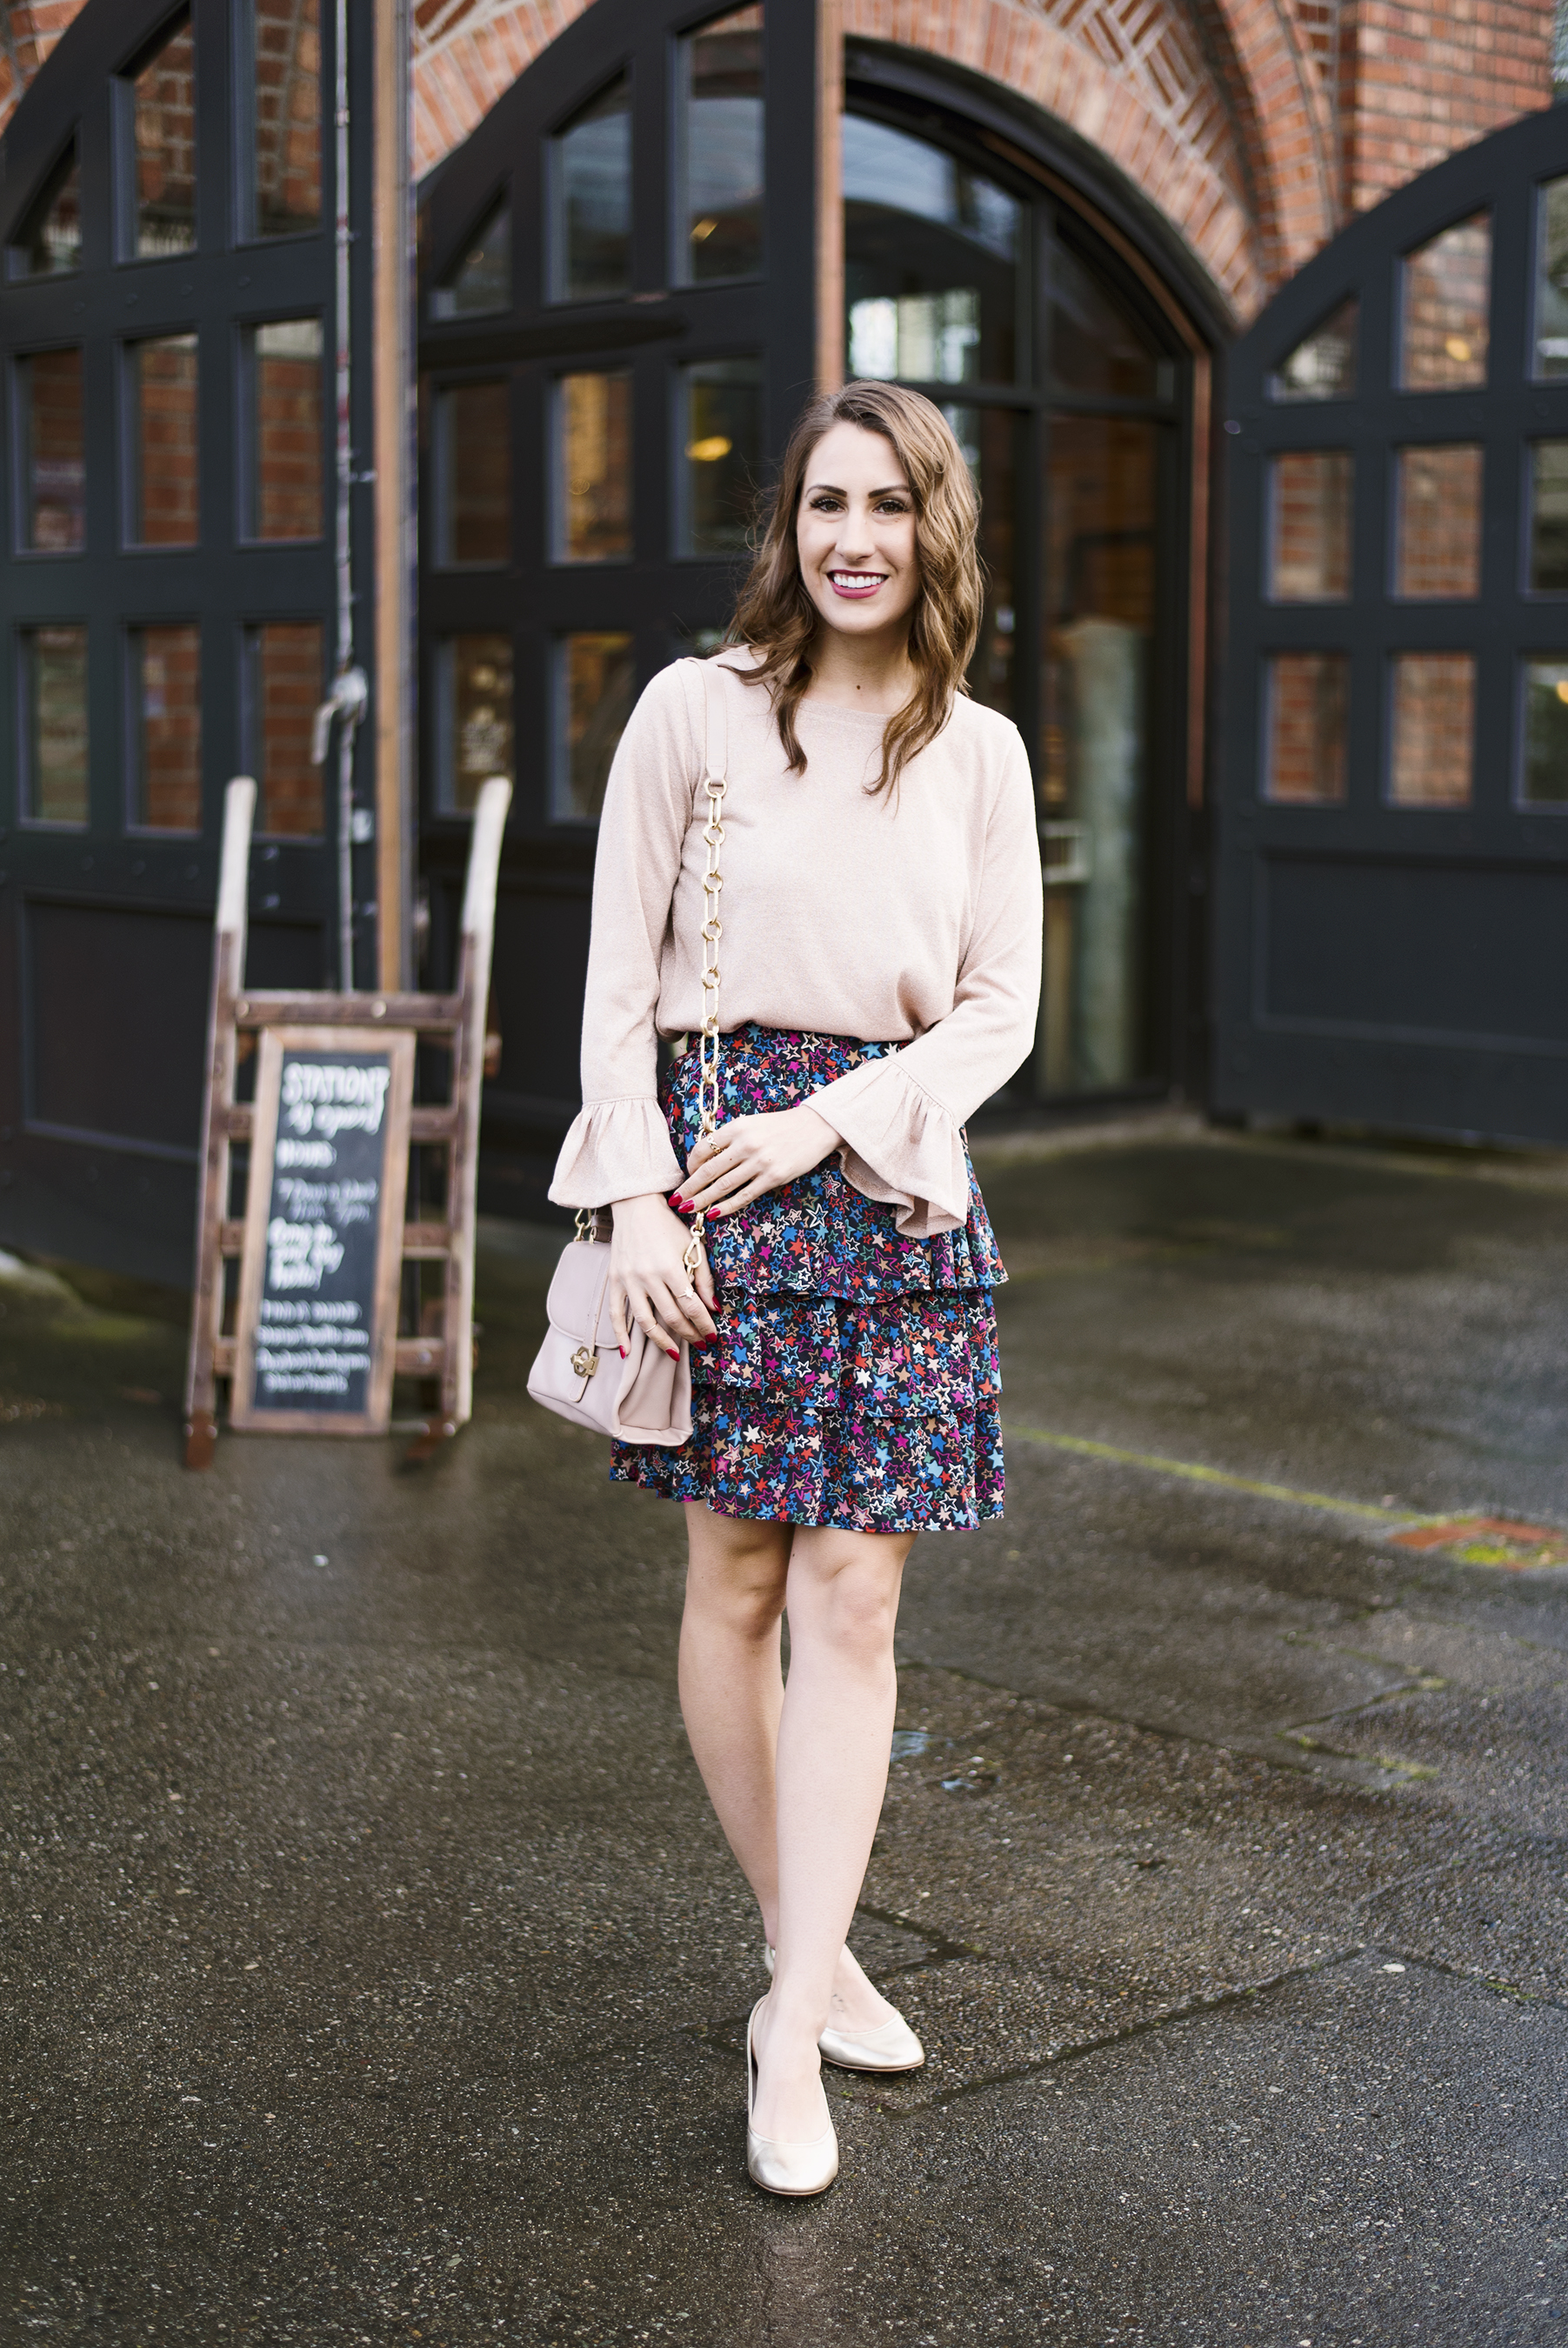 diary of this girl megan, valentine's day style tips